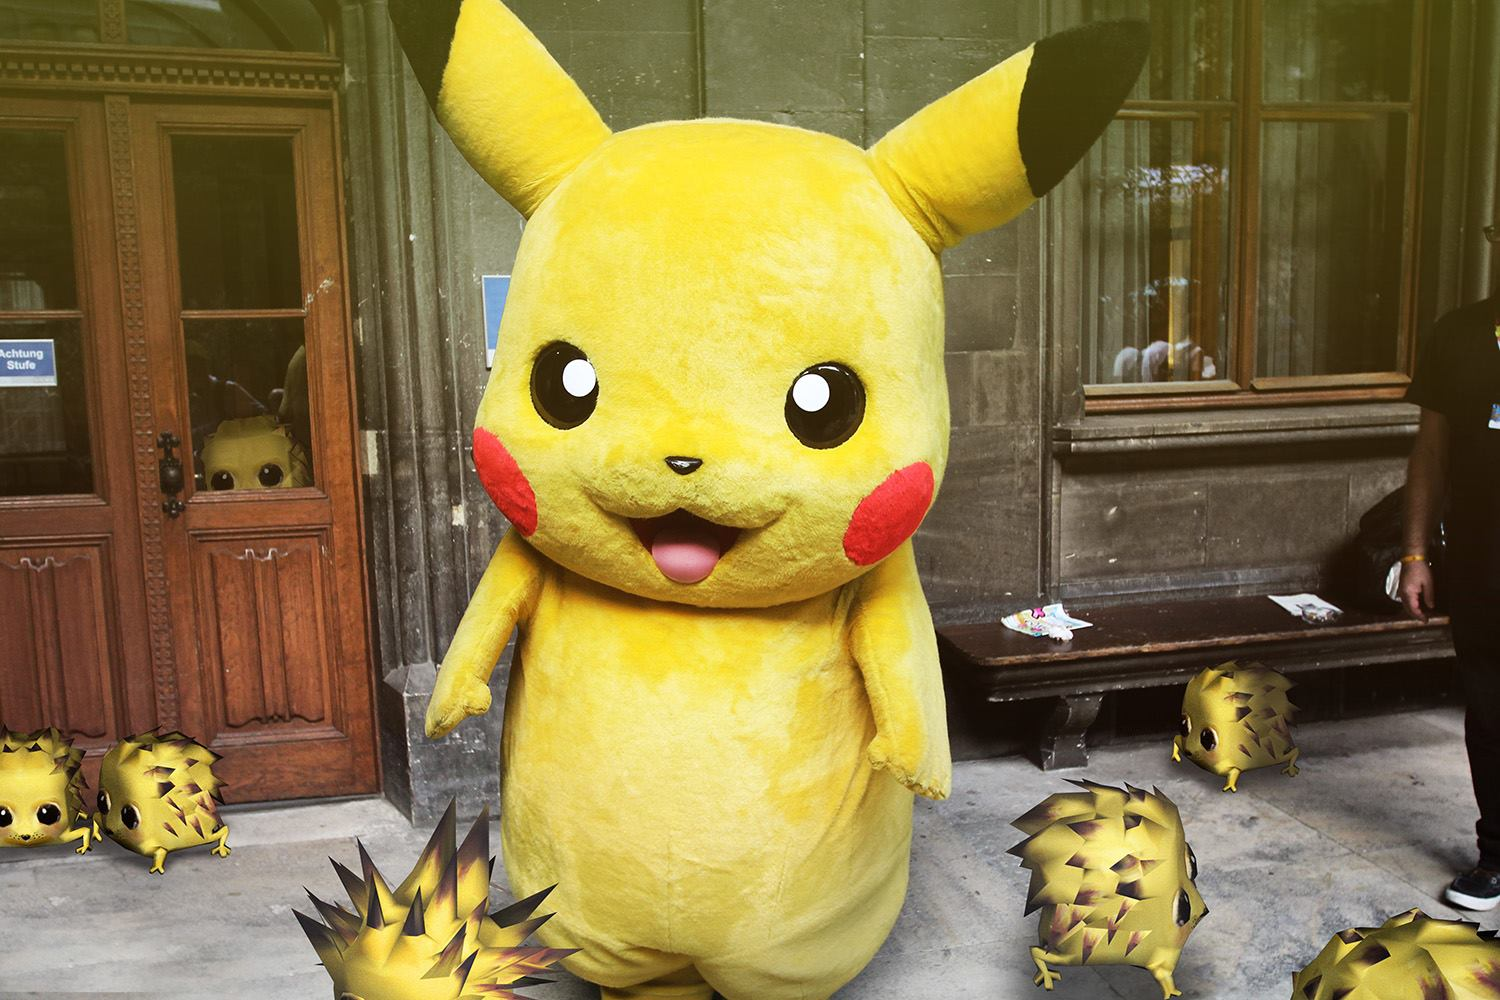 The Yellow Noomies could be Pikachu's kids.